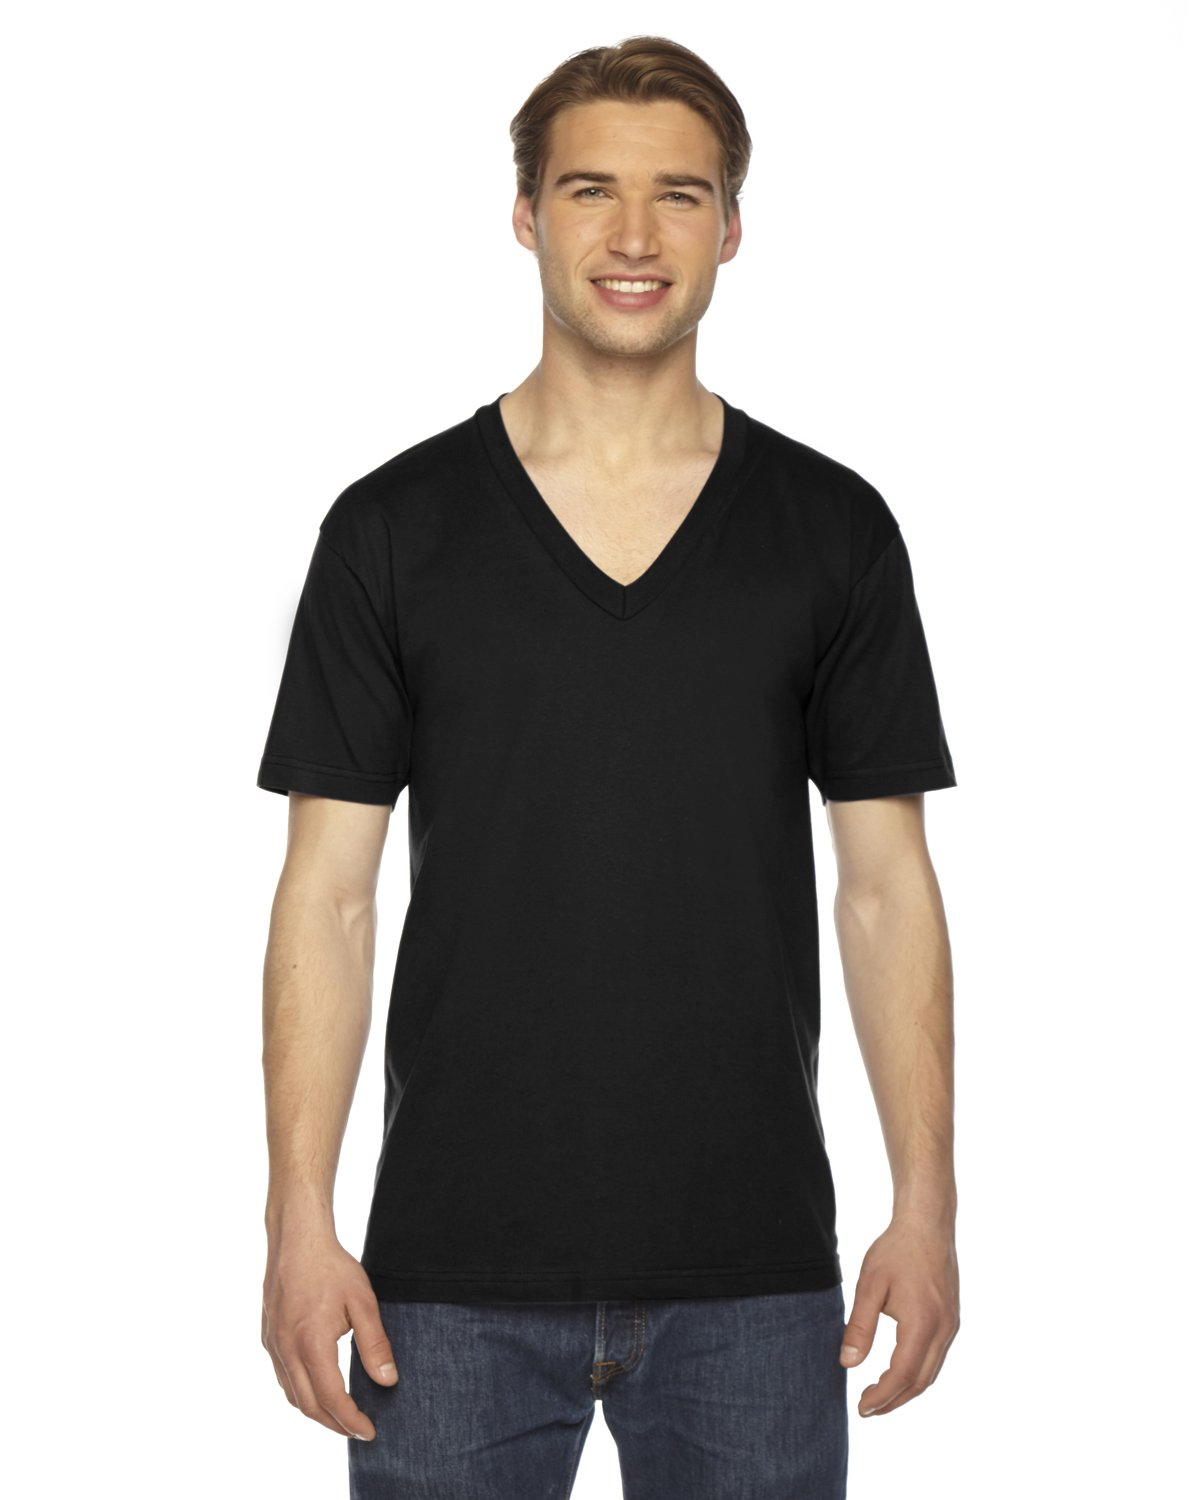 American Apparel 2456W Unisex Fine Jersey Short-Sleeve V-Neck T-Shirt Black 2XL